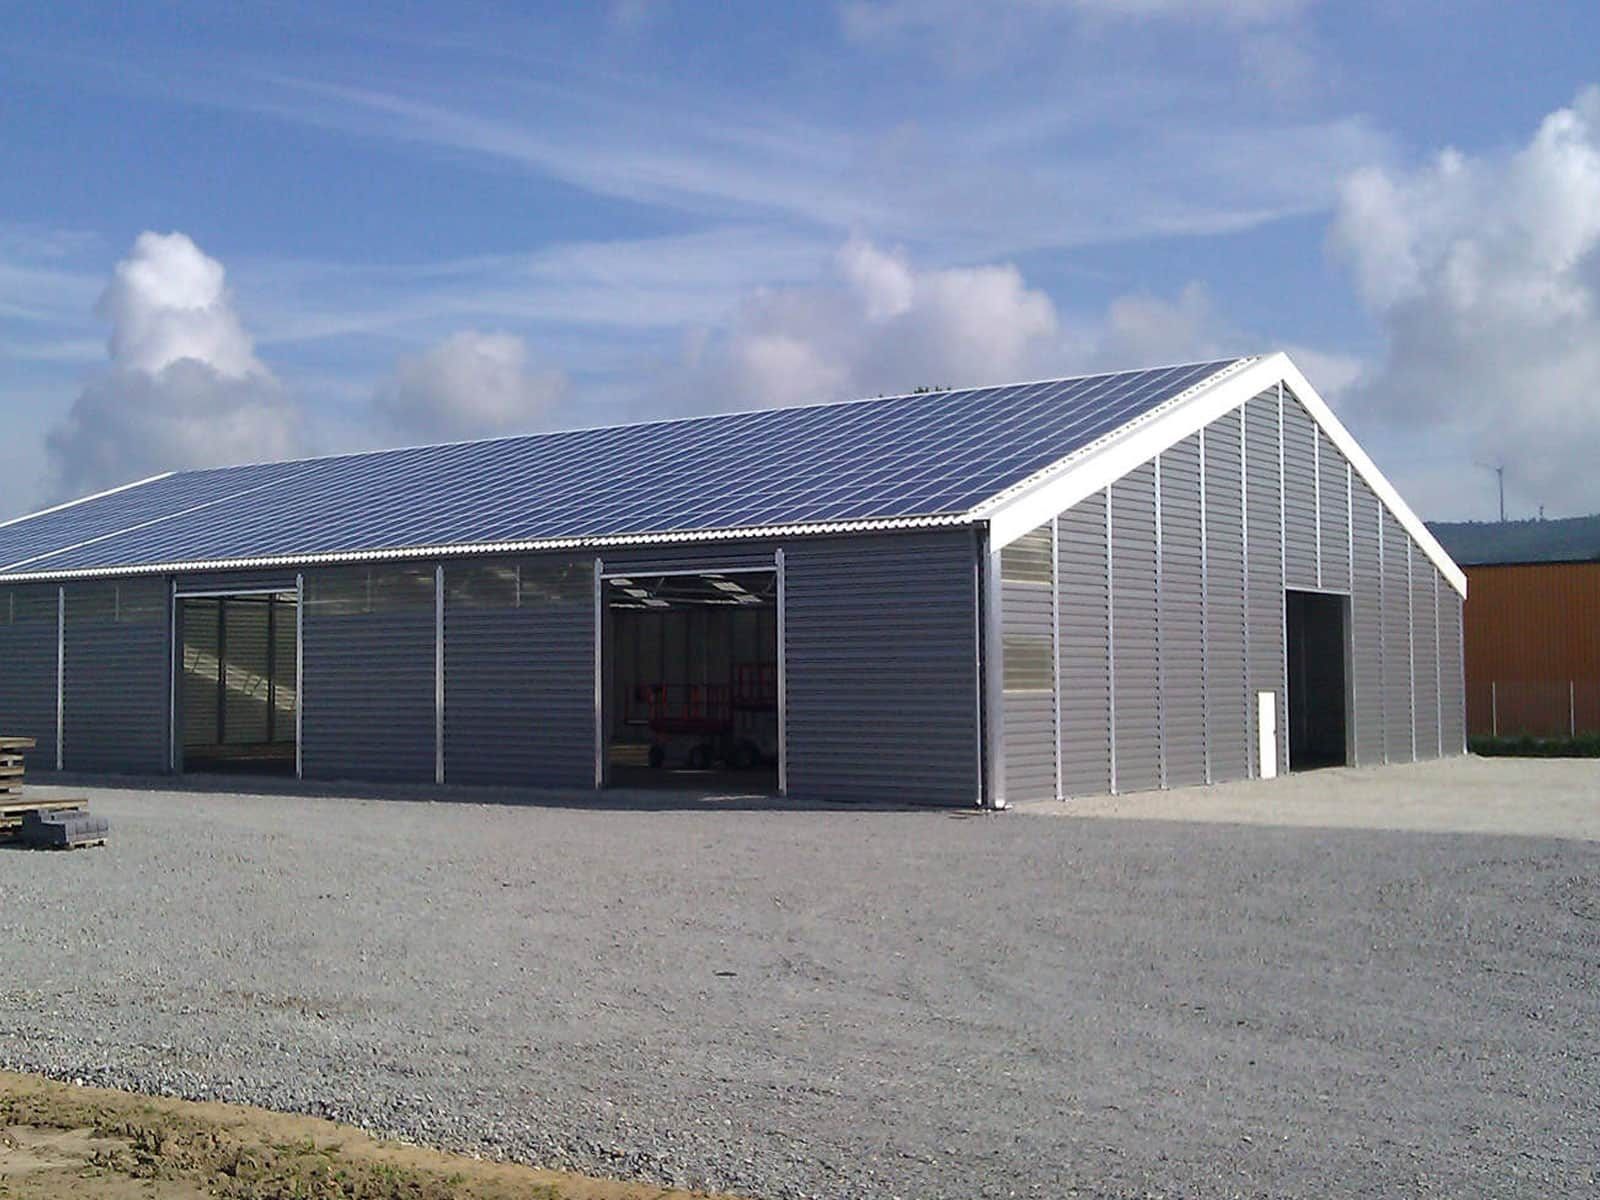 Steel roofed temporary buildings temp re build ltd for Steel barn structures